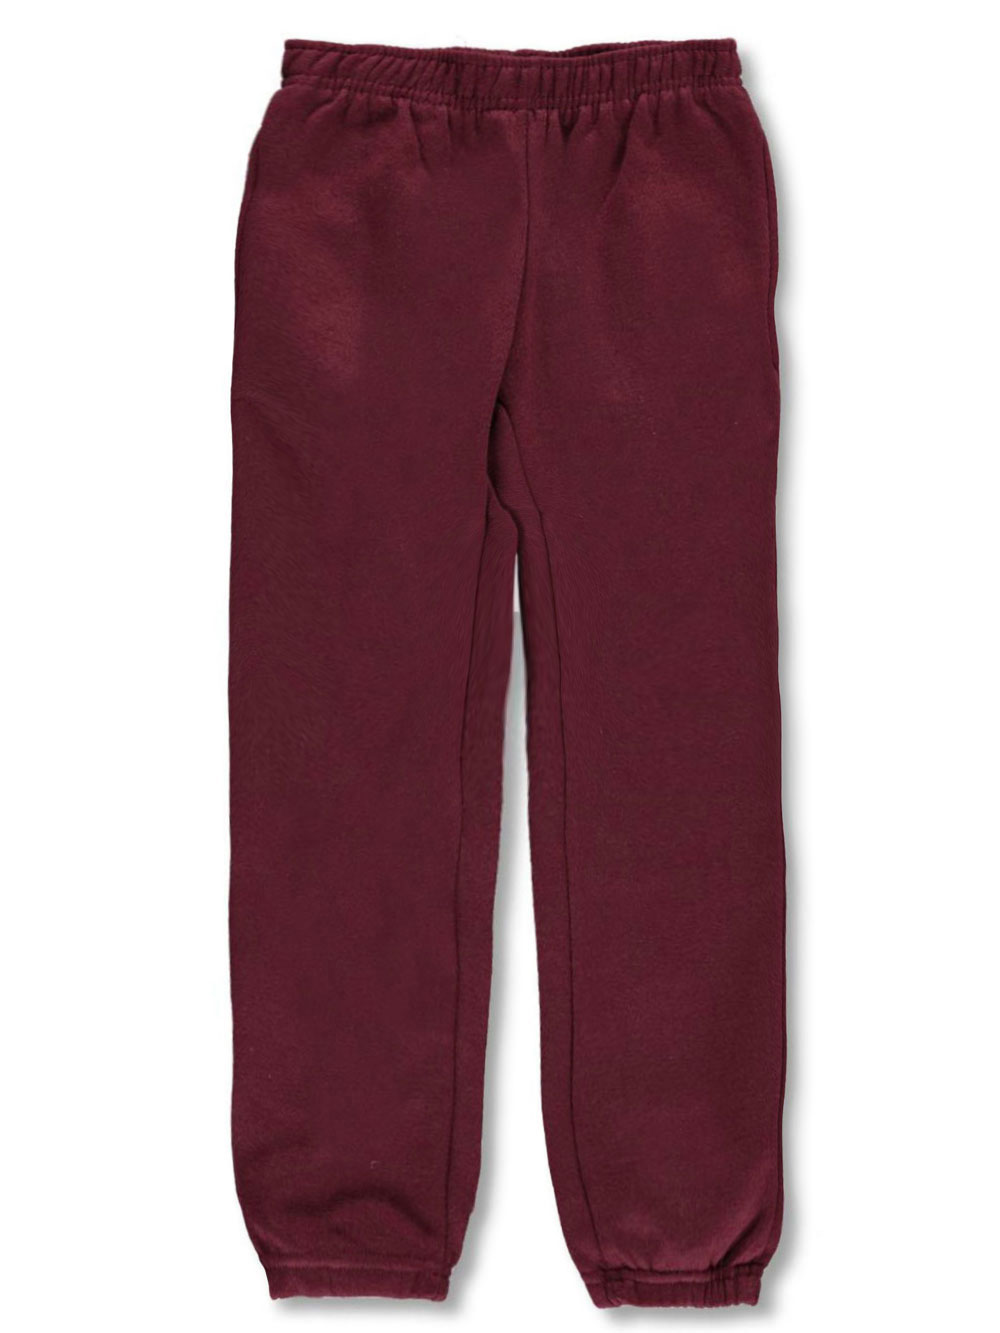 Premium Authentic Schoolwear Sweatpants/Joggers